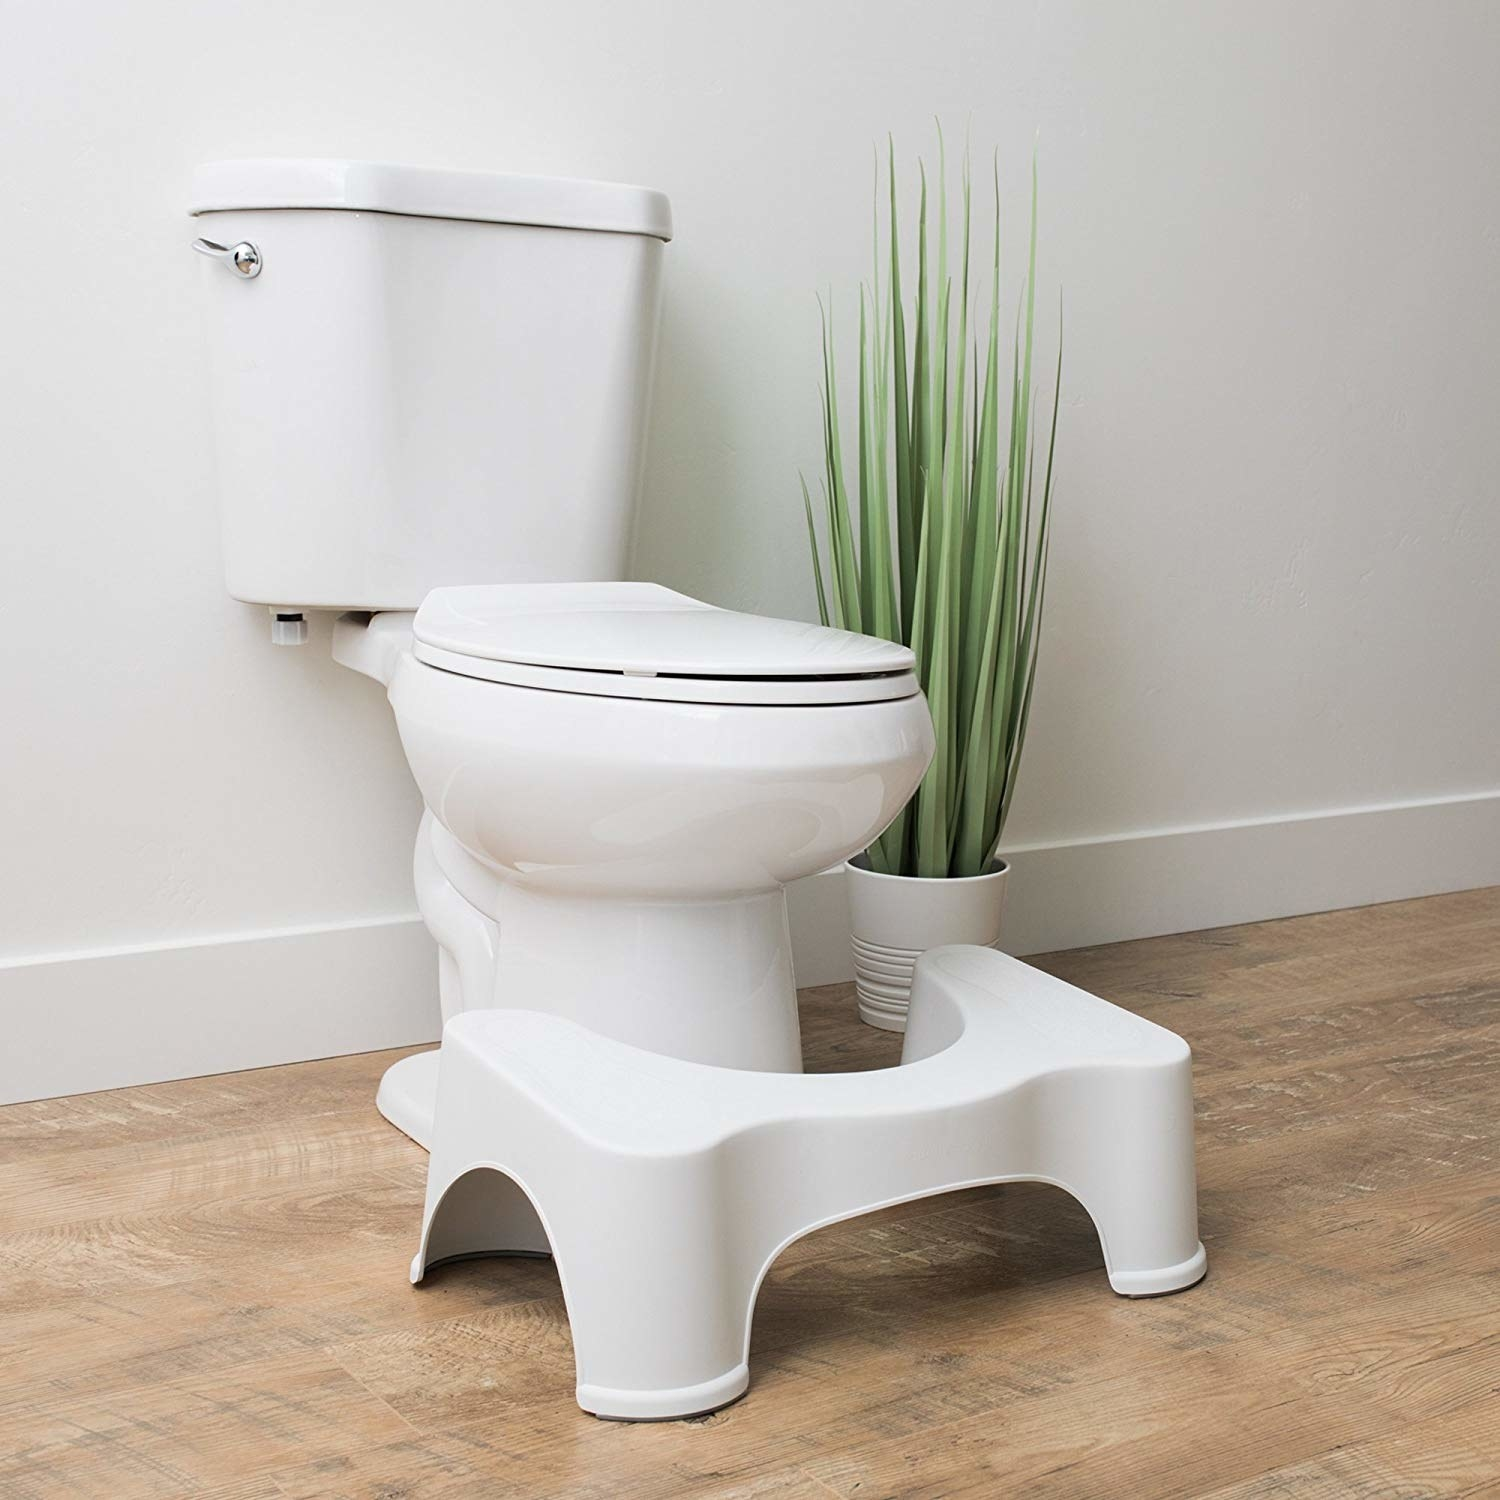 u-shaped stool that hooks around toilet when not in use